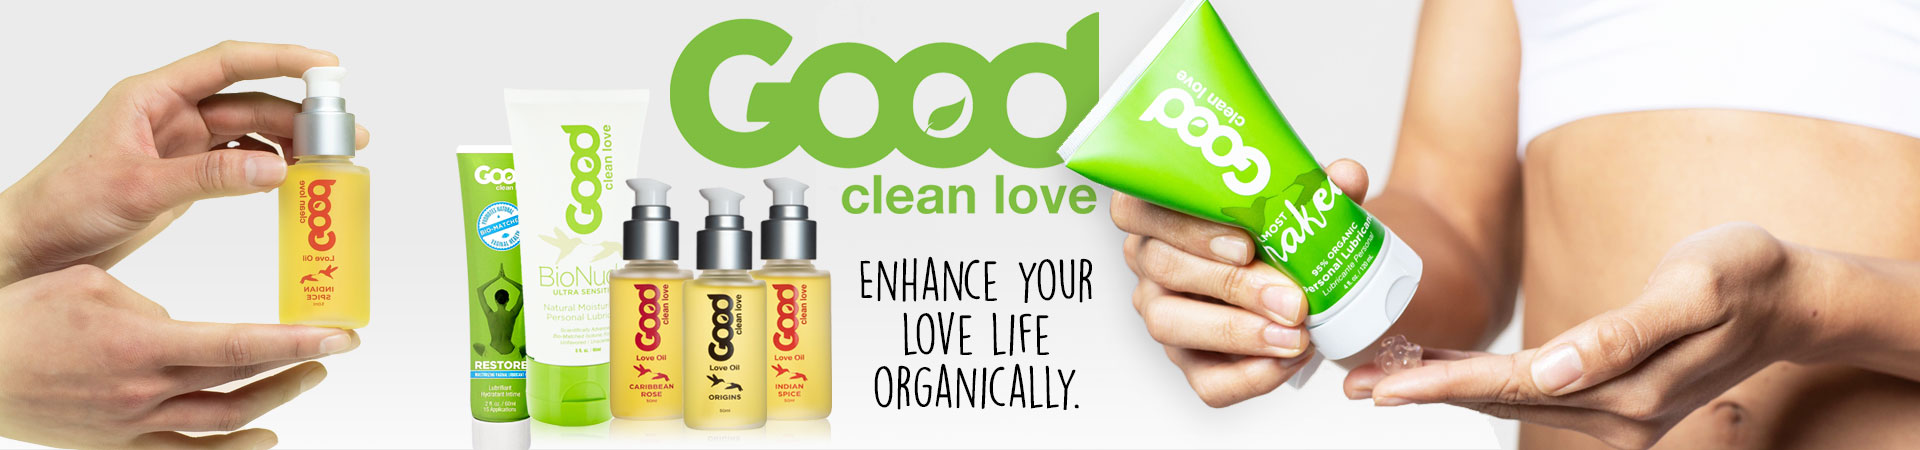 Good Clean Love - Enhance Your Love Life Organically